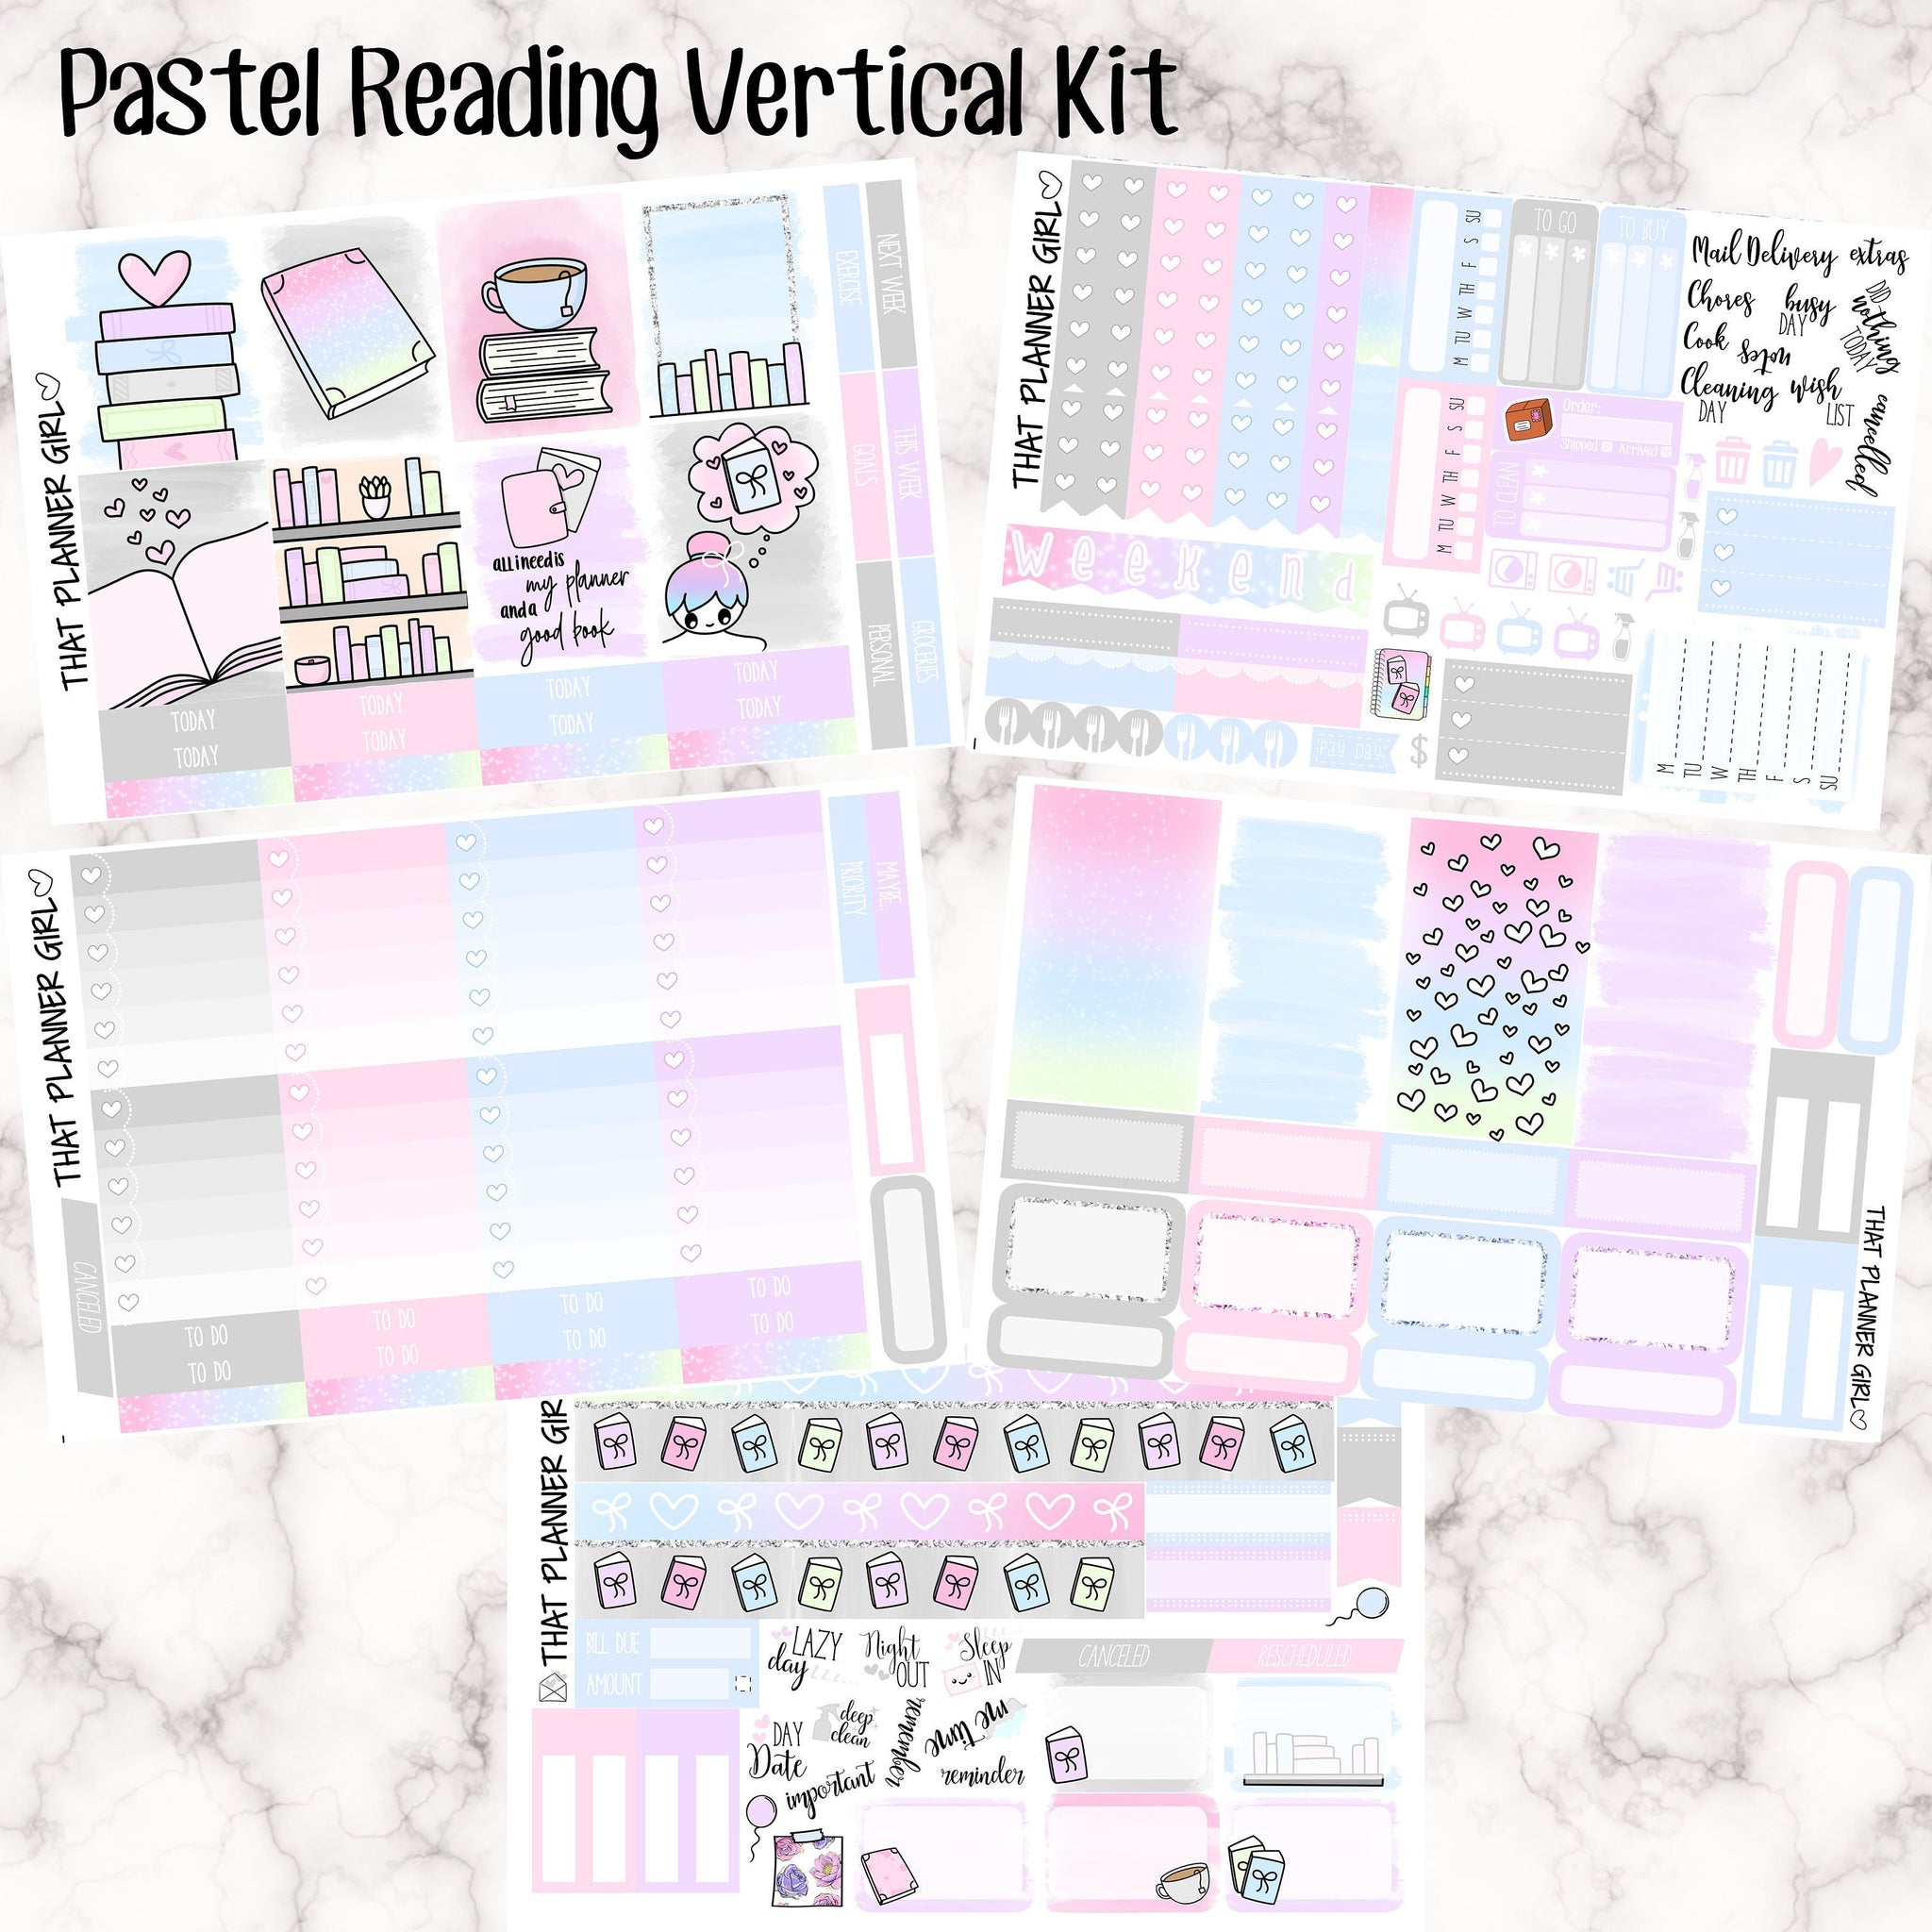 Pastel Reading Vertical Kit